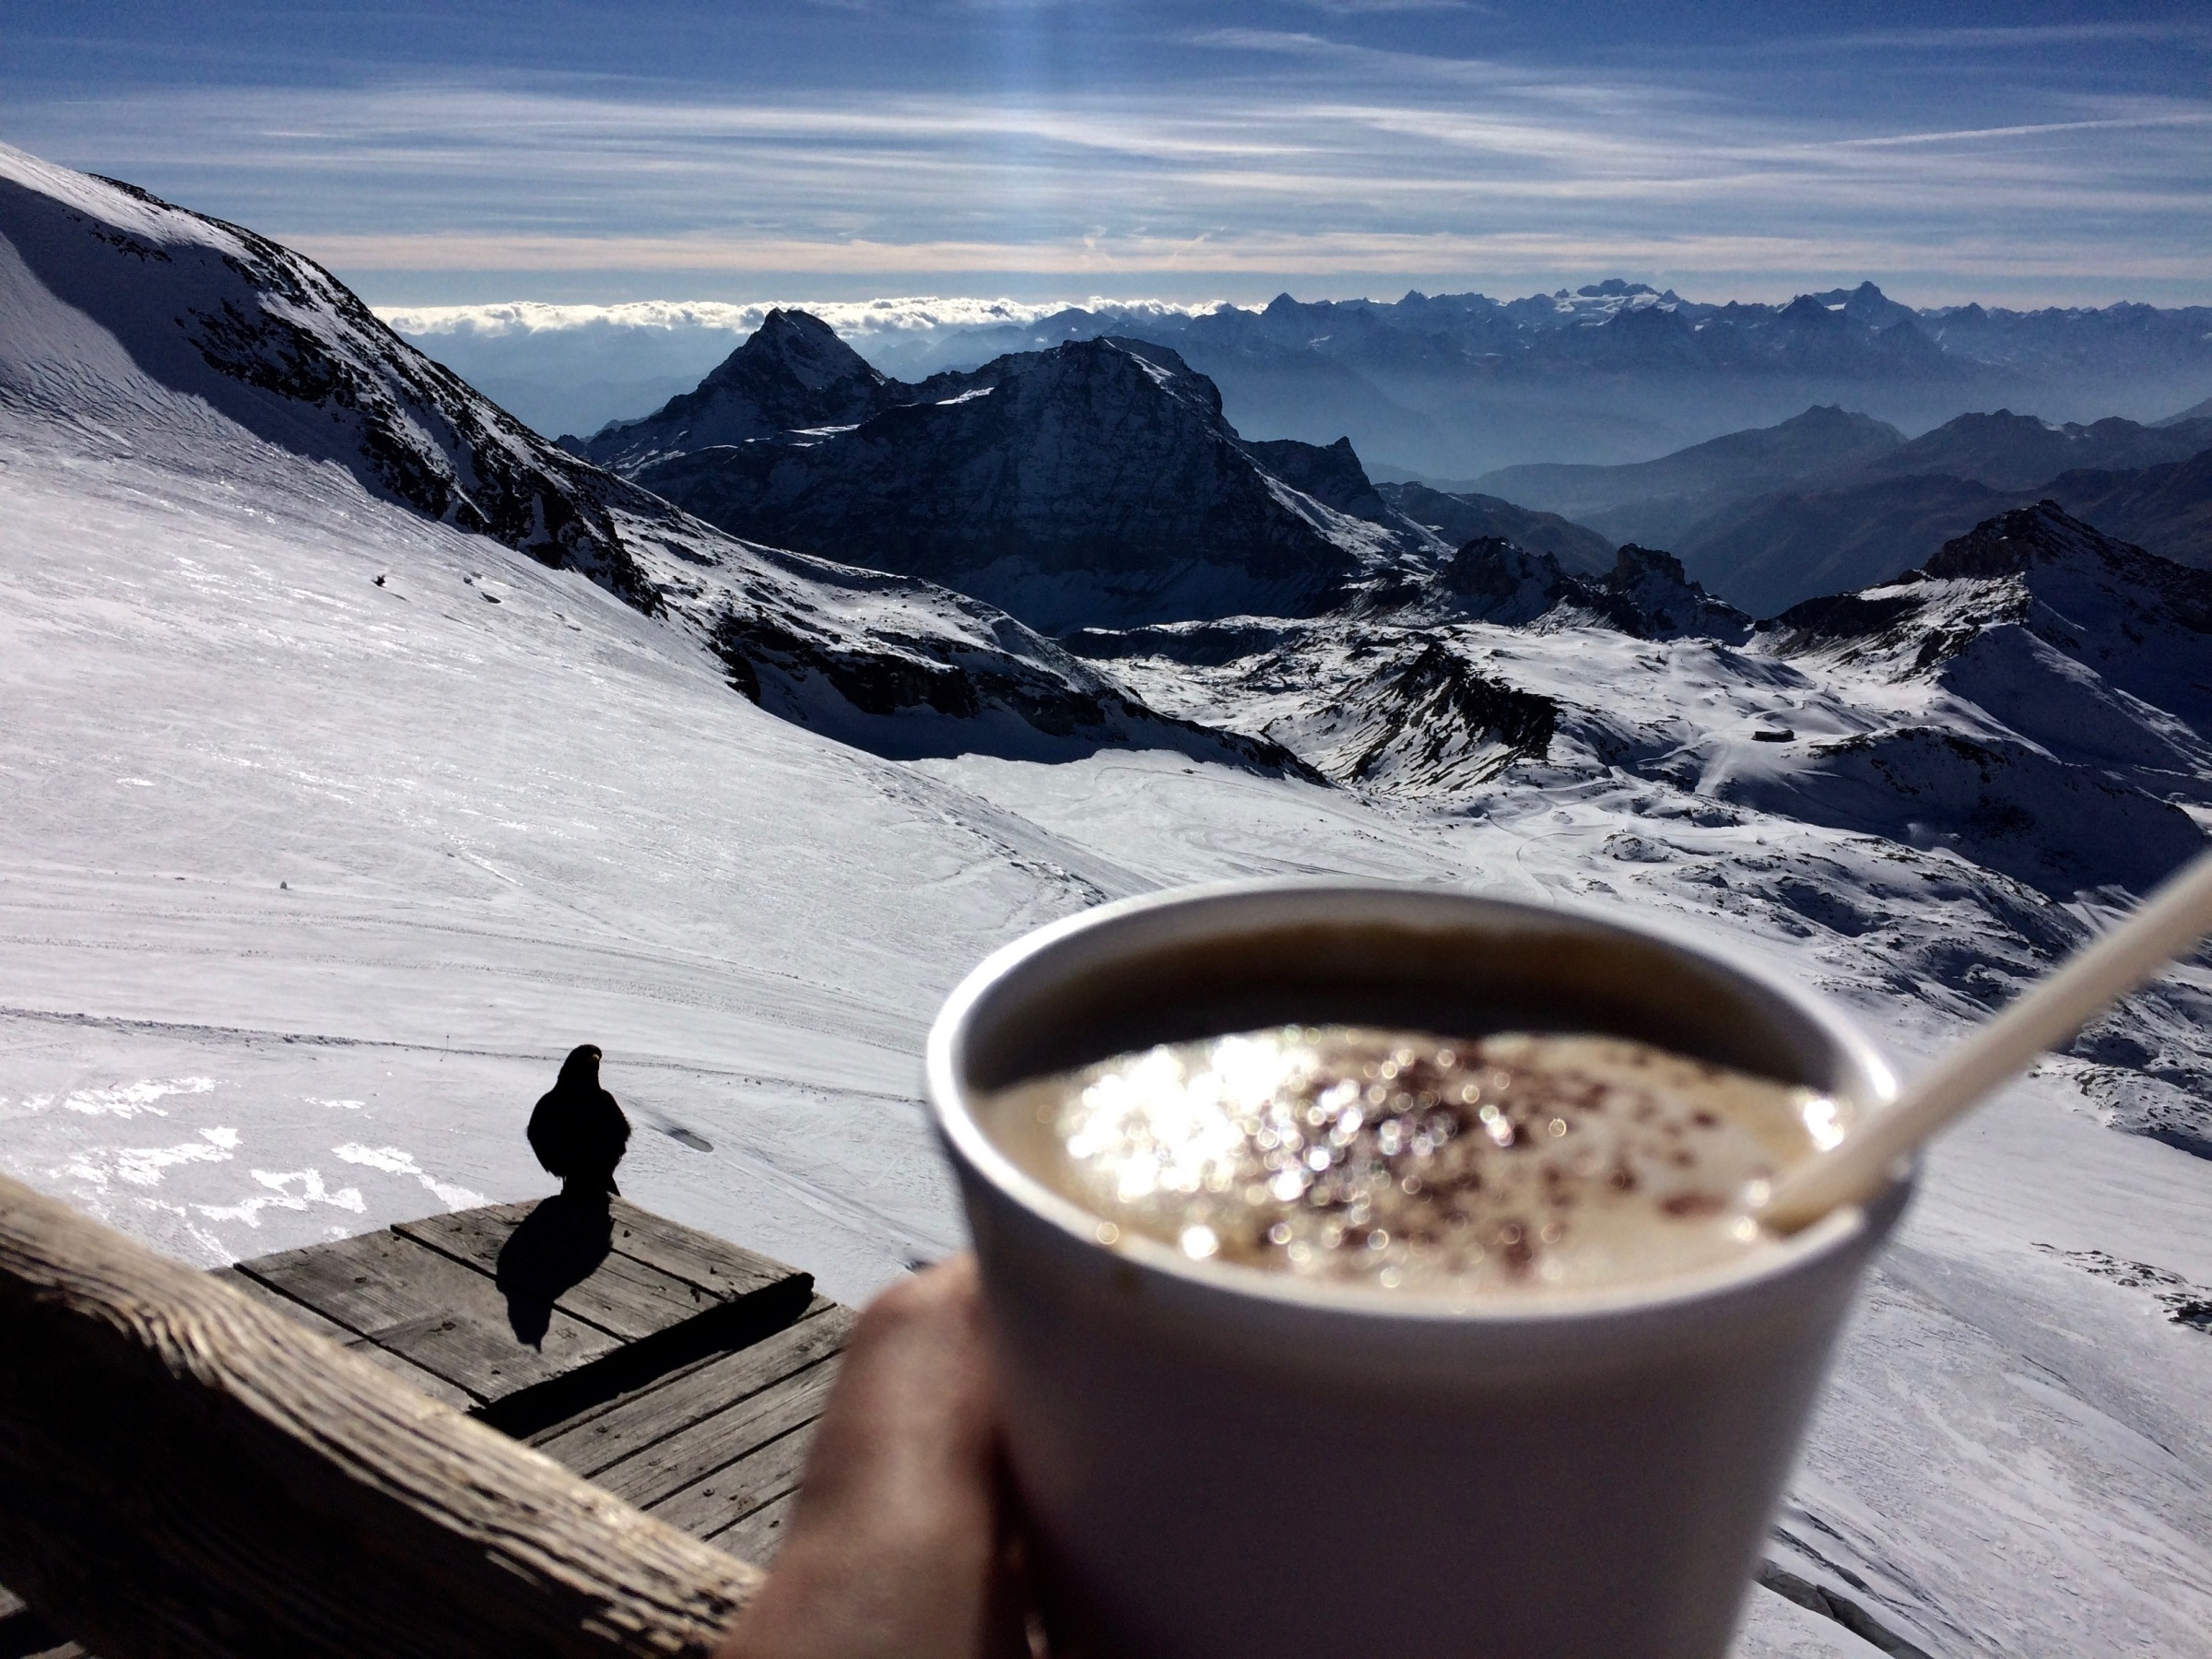 Coffee break with a view